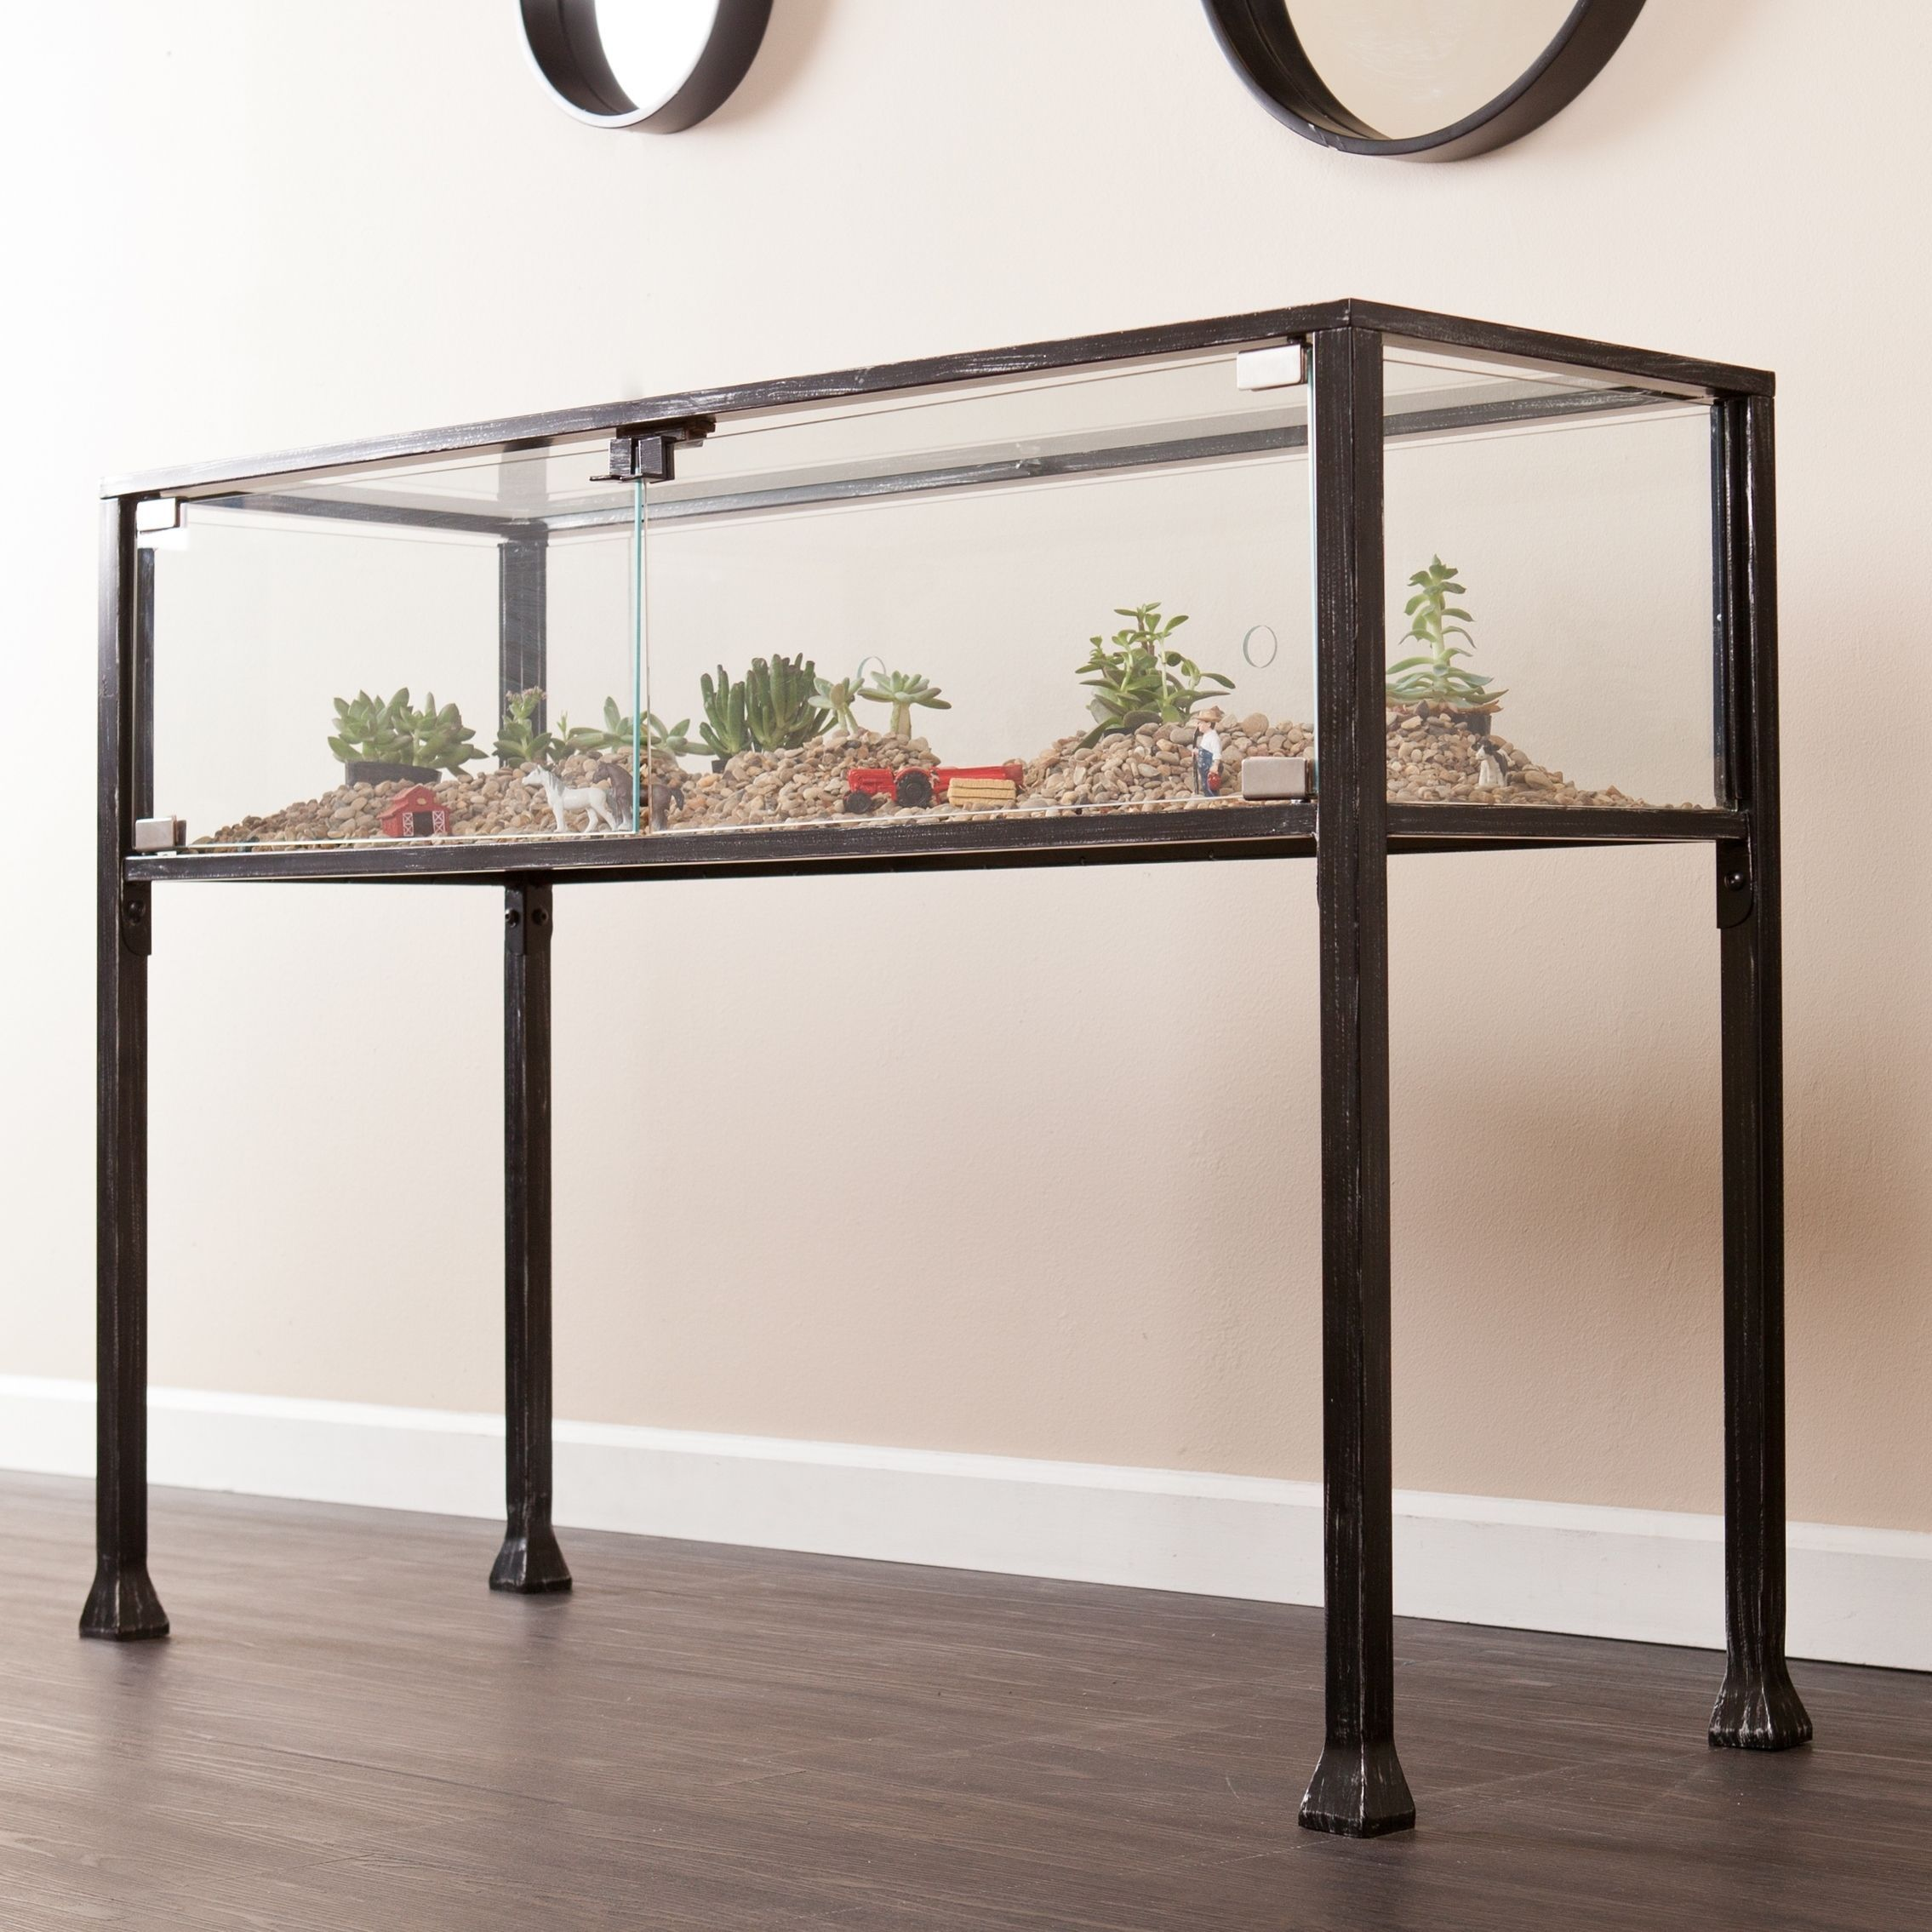 Tremendous This Terrarium Style Table Is Perfect For Displaying Caraccident5 Cool Chair Designs And Ideas Caraccident5Info